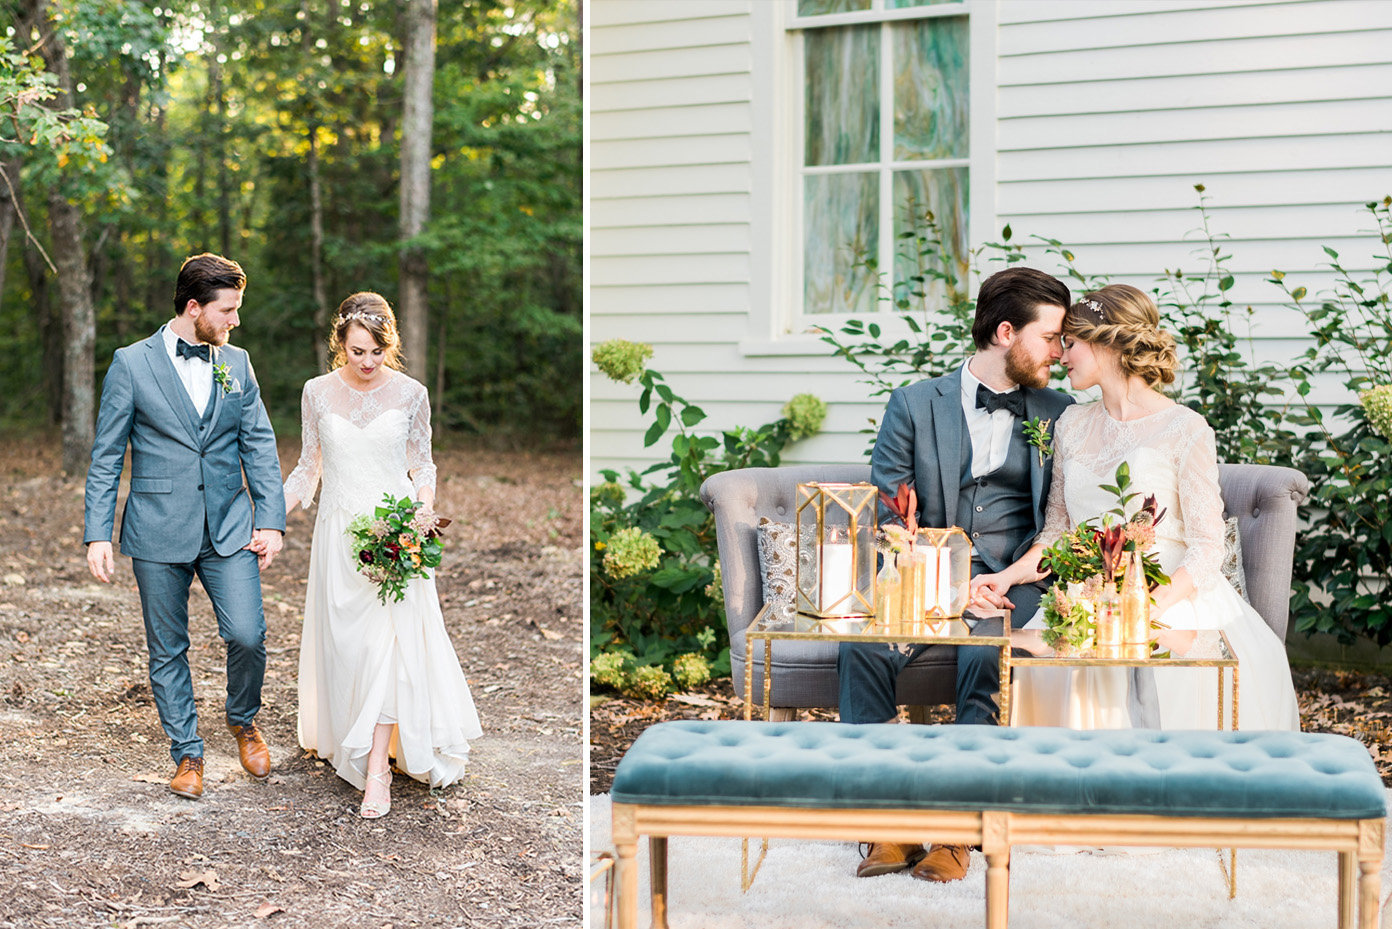 The Parlour wedding venue couple, Chapel Hill, North Carolina